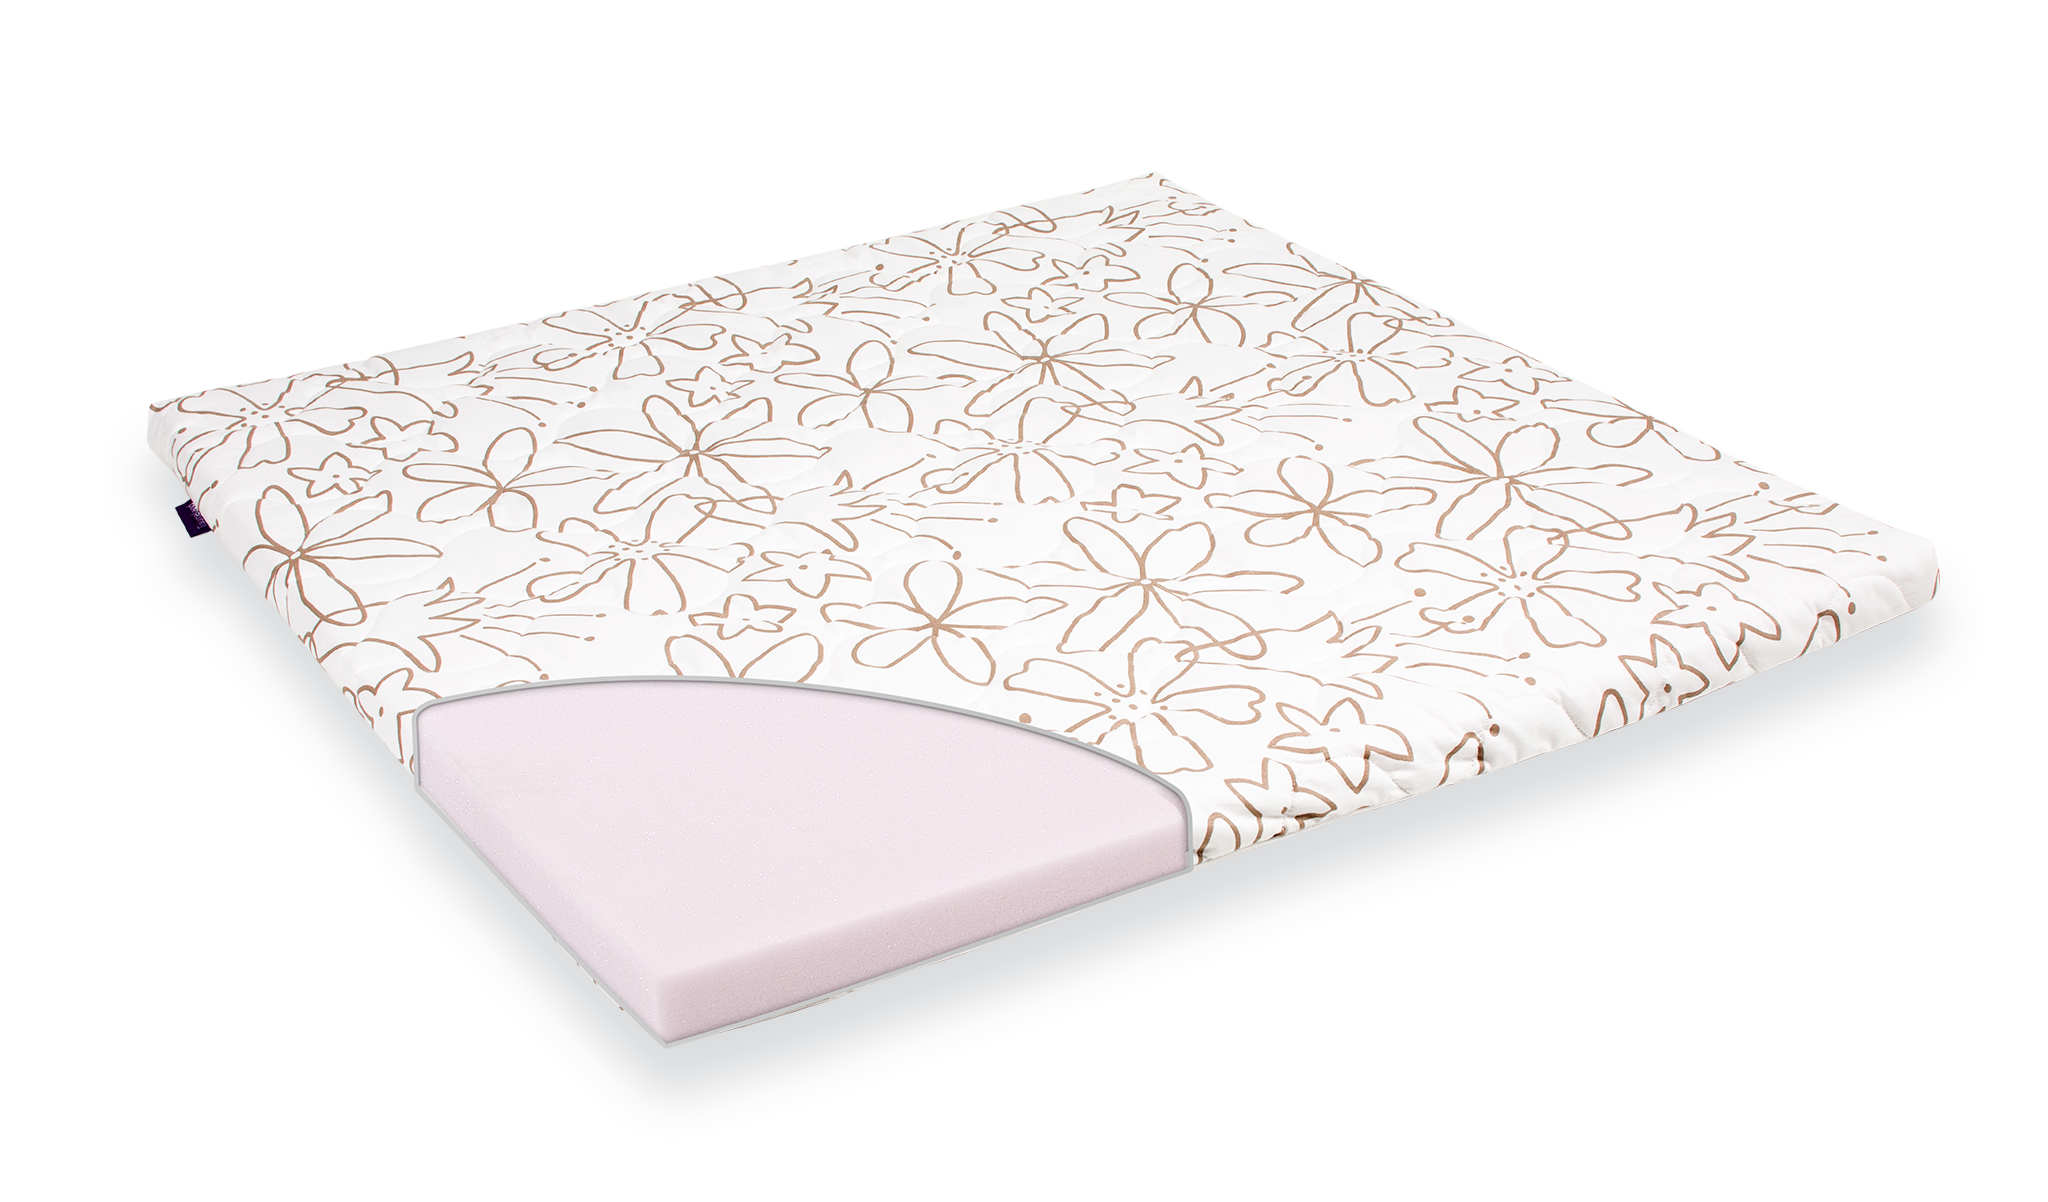 T070124 - BASIC mattress for playpen